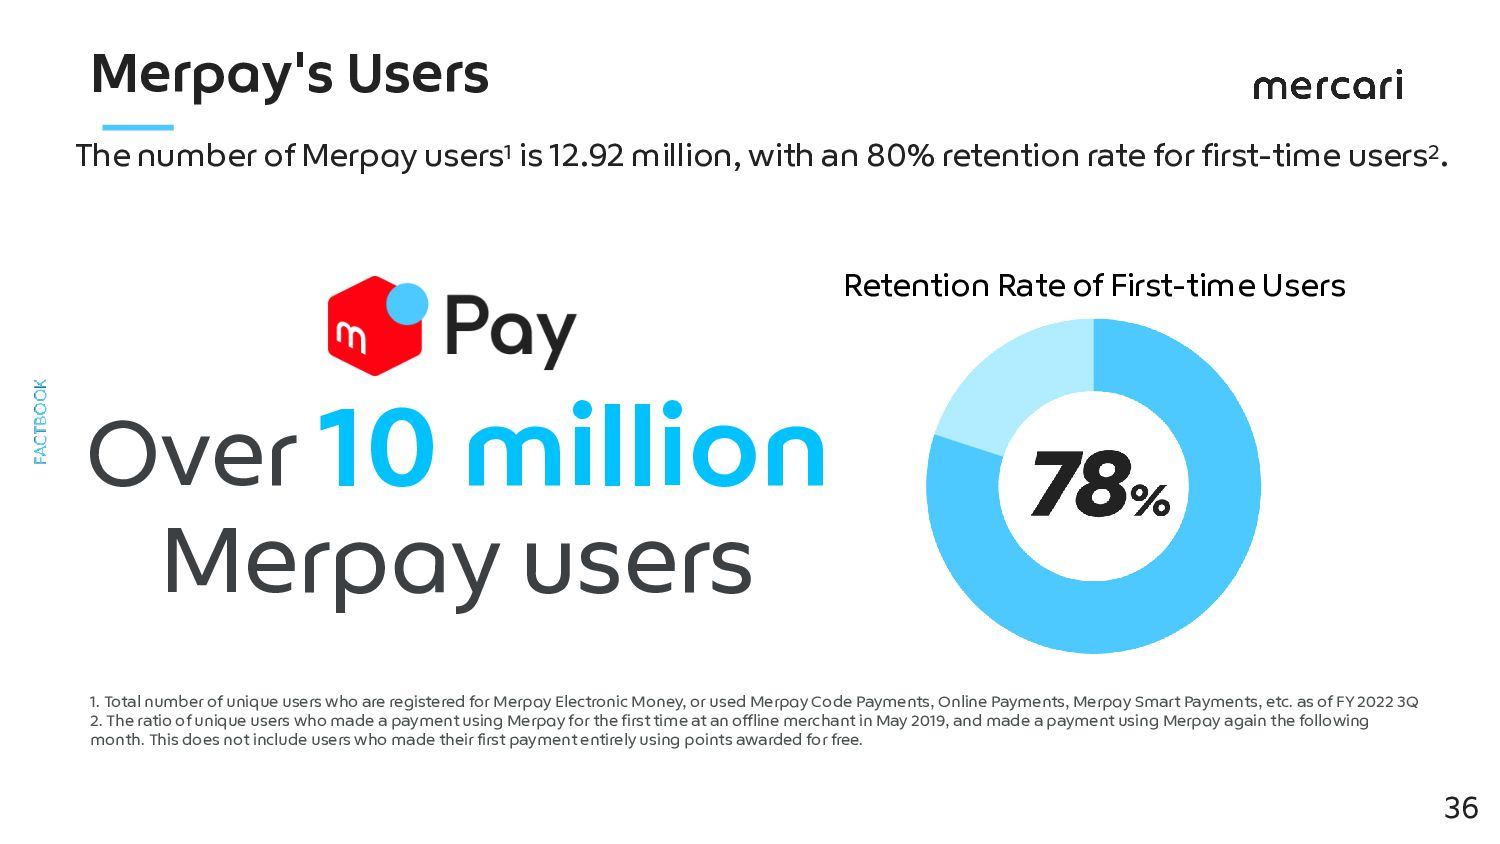 Securing talented management The Mercari group ...